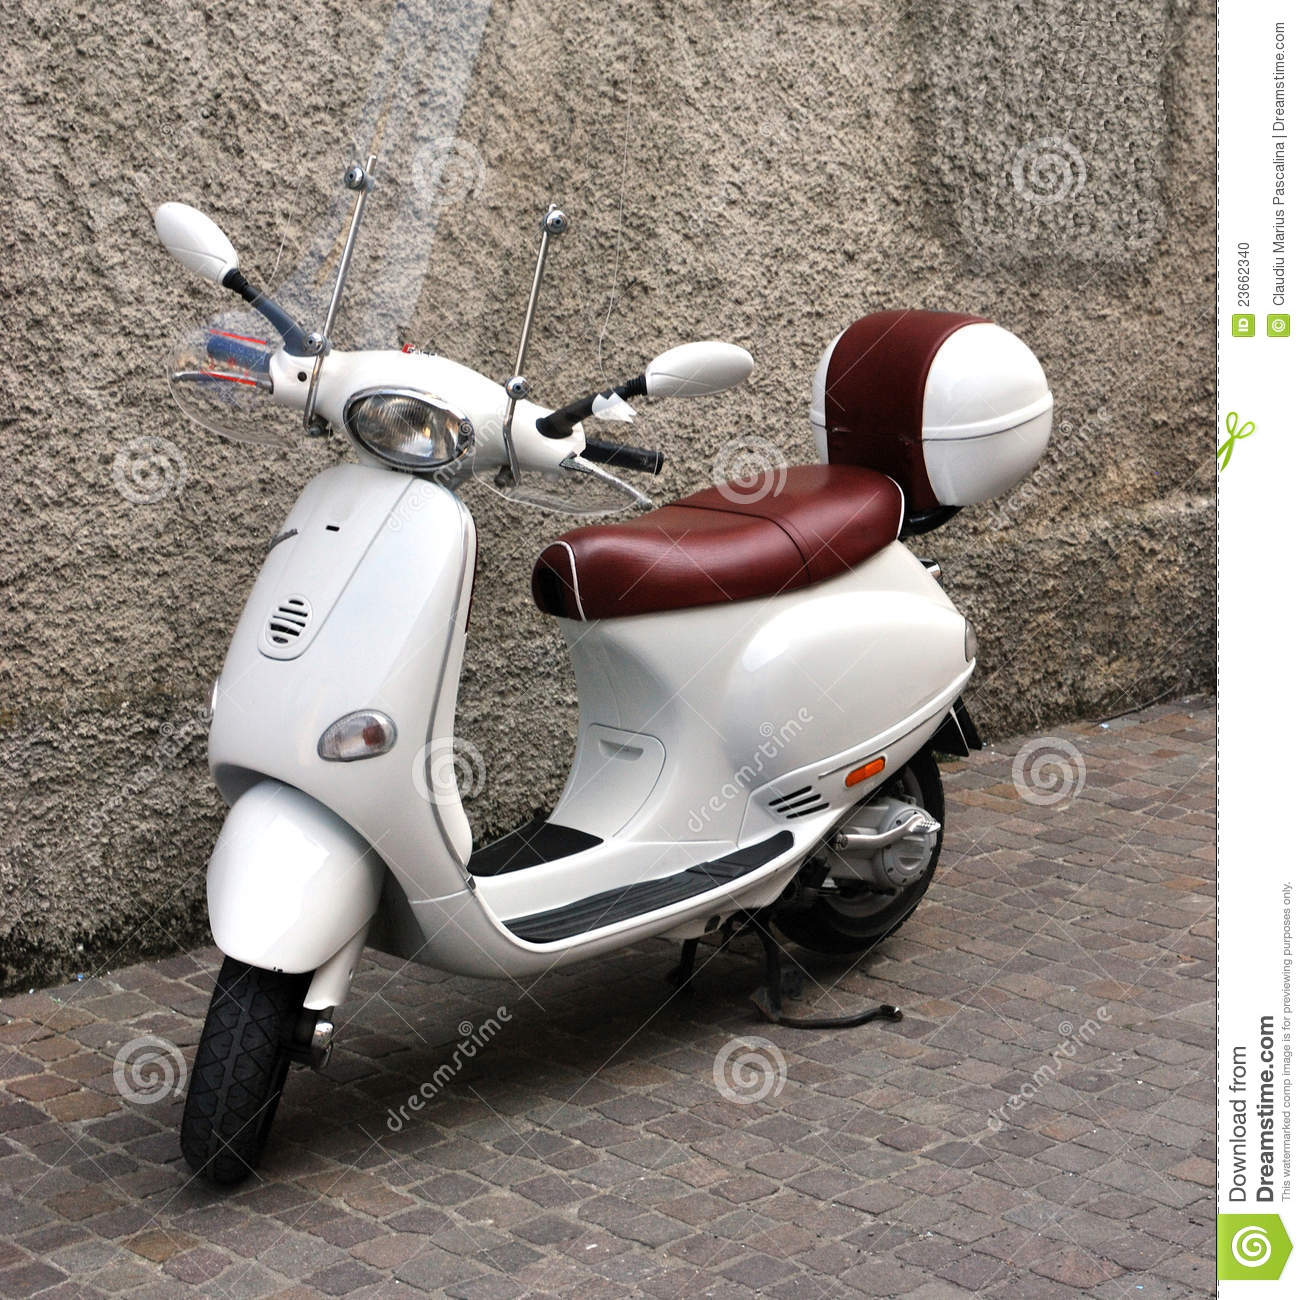 Vespa Roller Oldtimer Scooter Vespa Stock Images Download 3 488 Royalty Free Photos